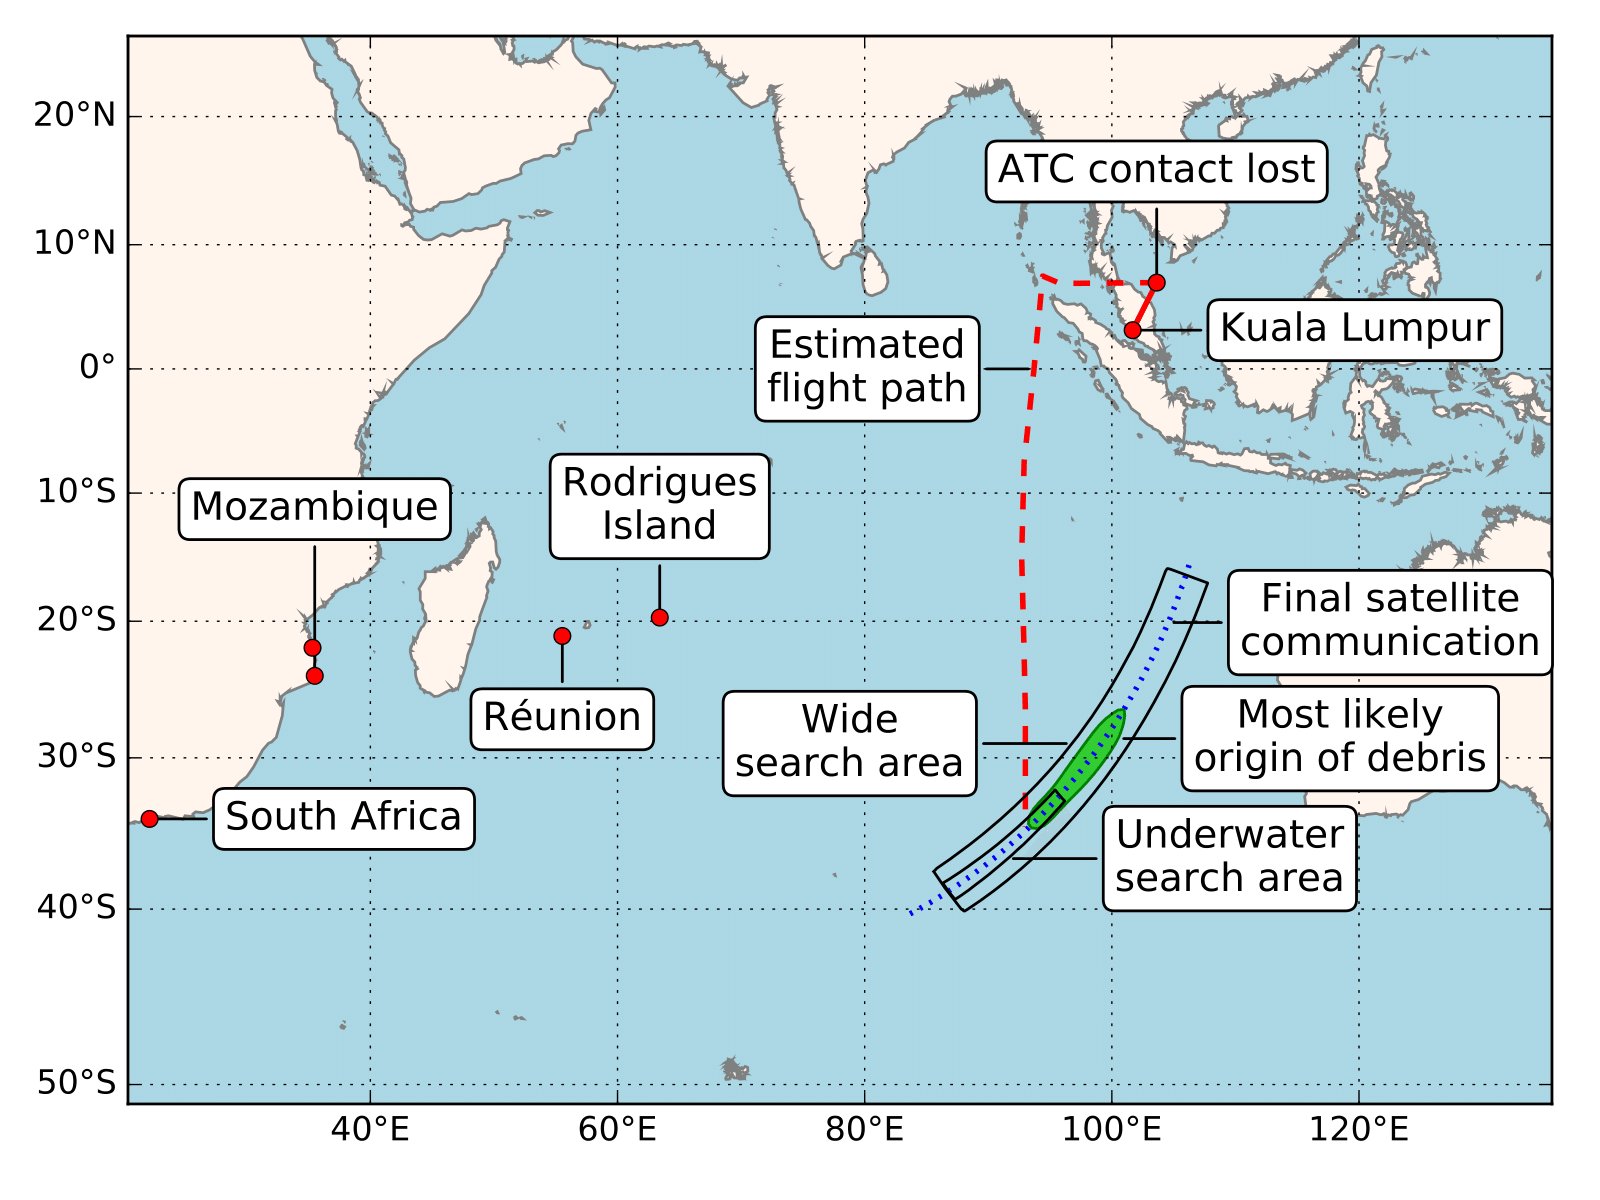 Figure 1: MH370 debris location and most likely origin compared to current underwater search area (Credit: Jansen et al., Nat. Hazards Earth Syst. Sci (2016))